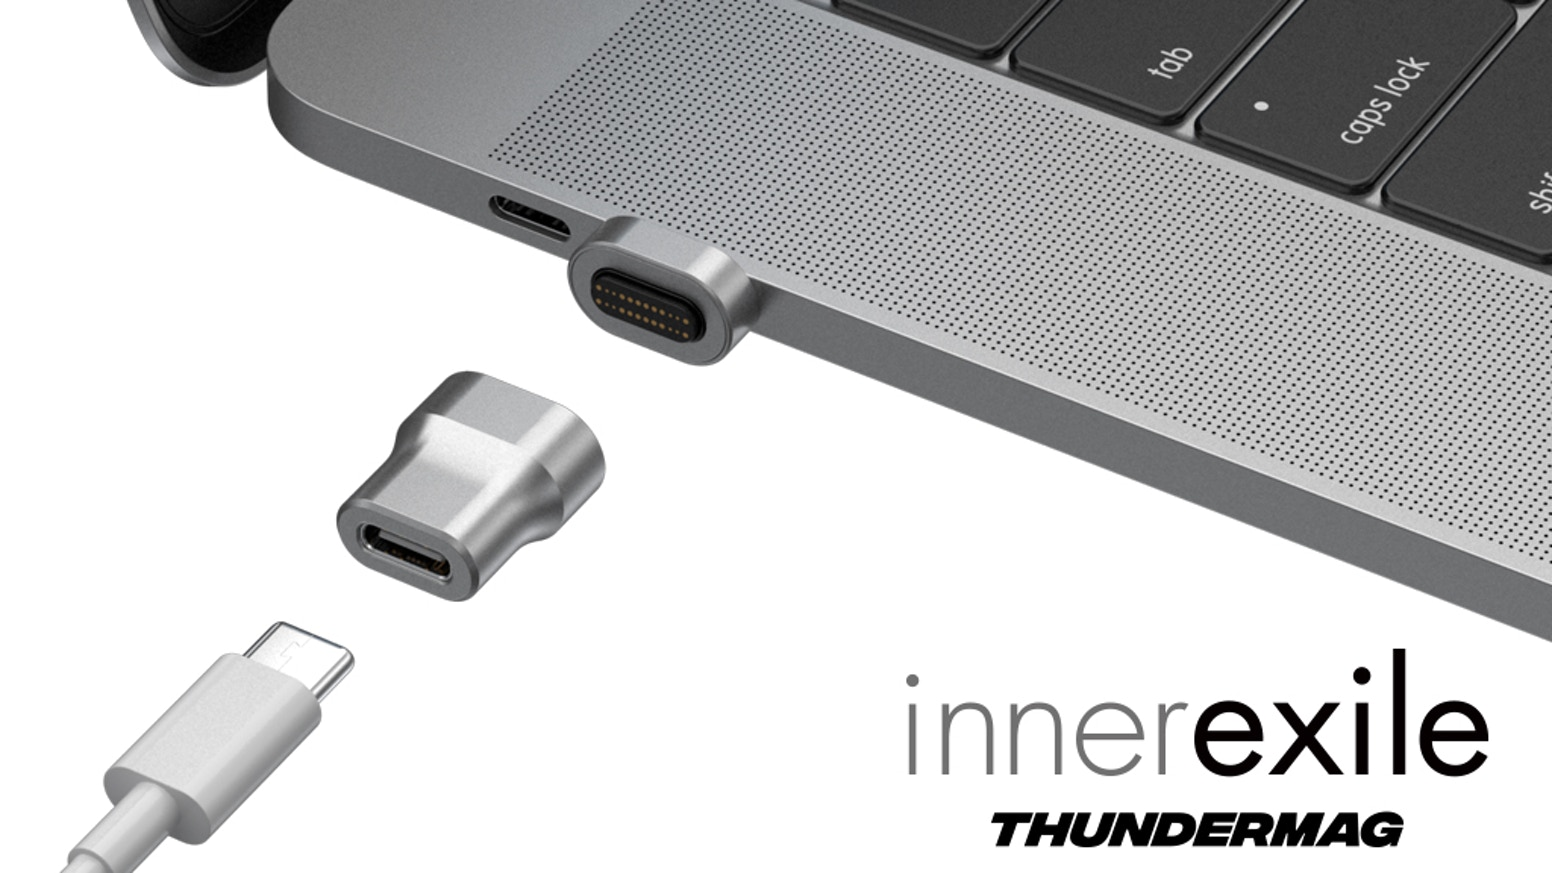 ThunderMag the sleekest & the world's fastest magnetic adaptor, a Thunderbolt3 40Gb/s companion reinvented